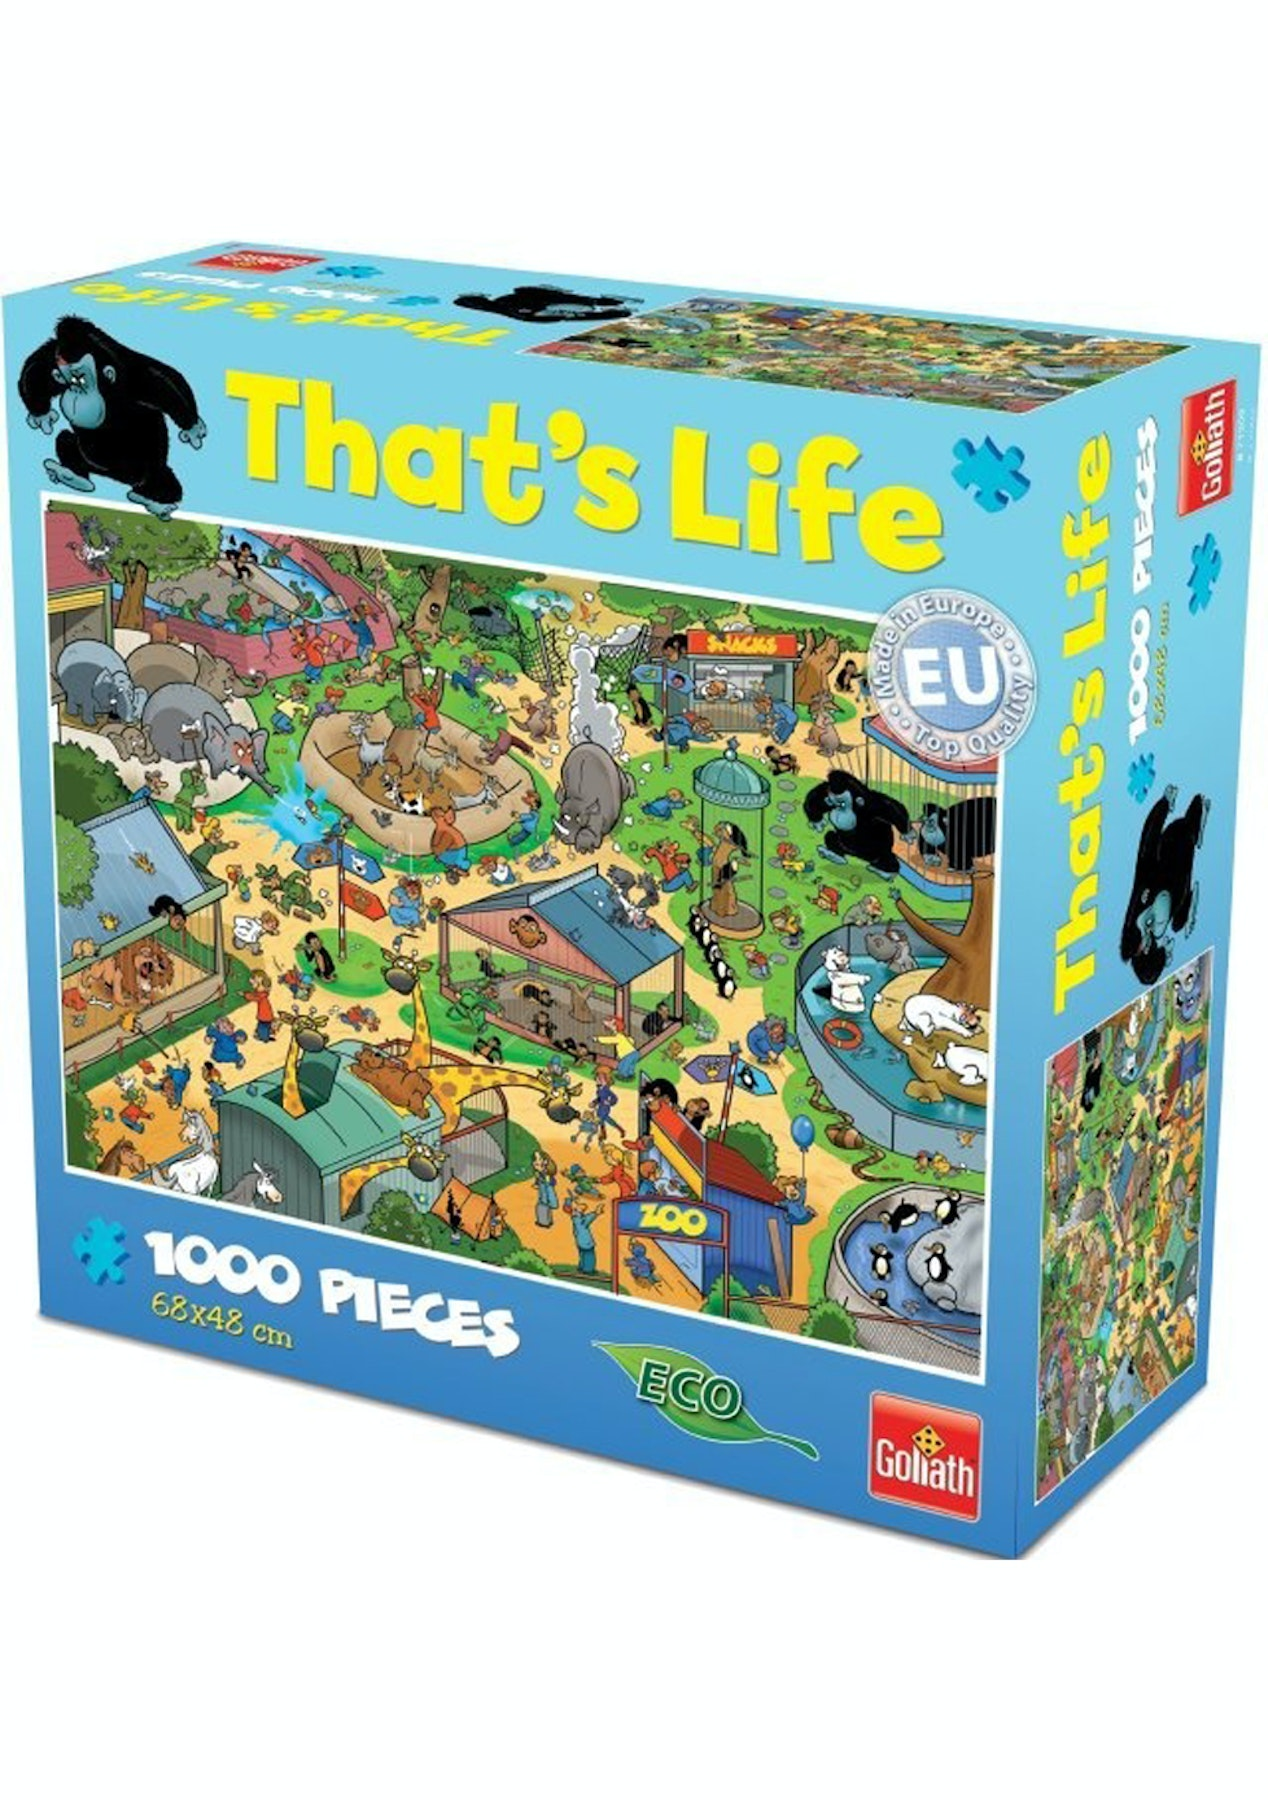 That's Life 1,000 Piece Jigsaw Puzzles